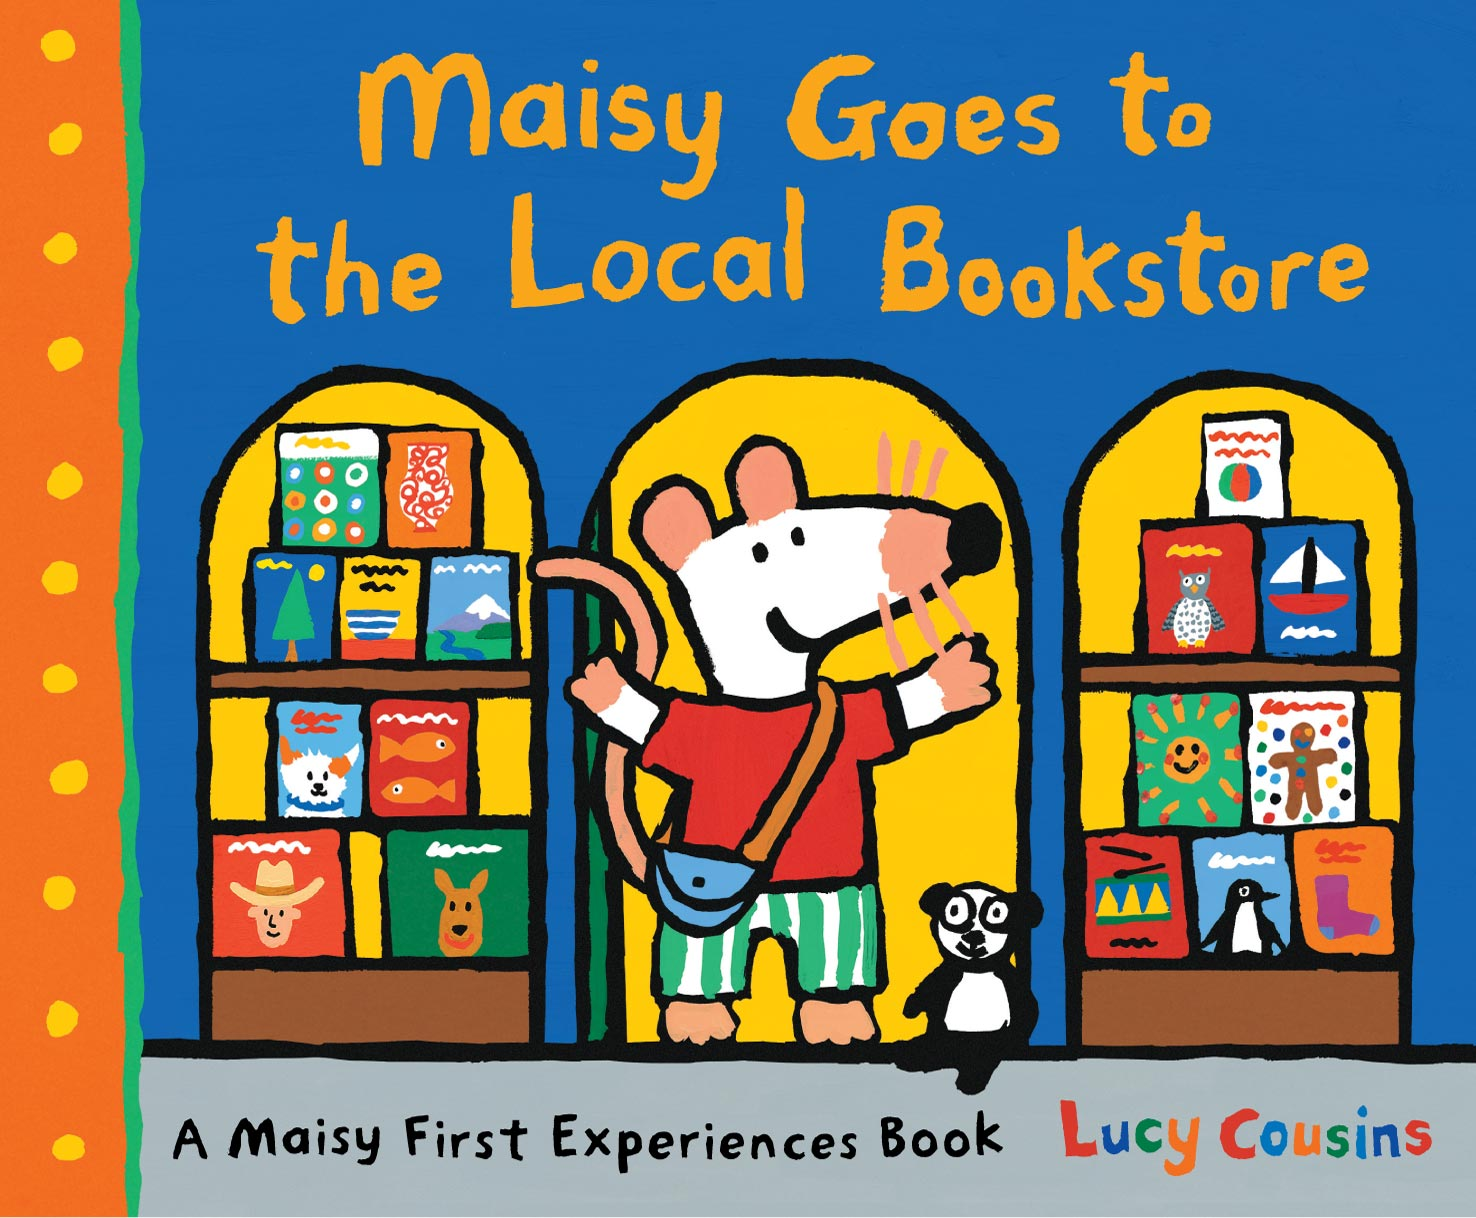 Book Review: Maisy Goes to the Local Bookstore